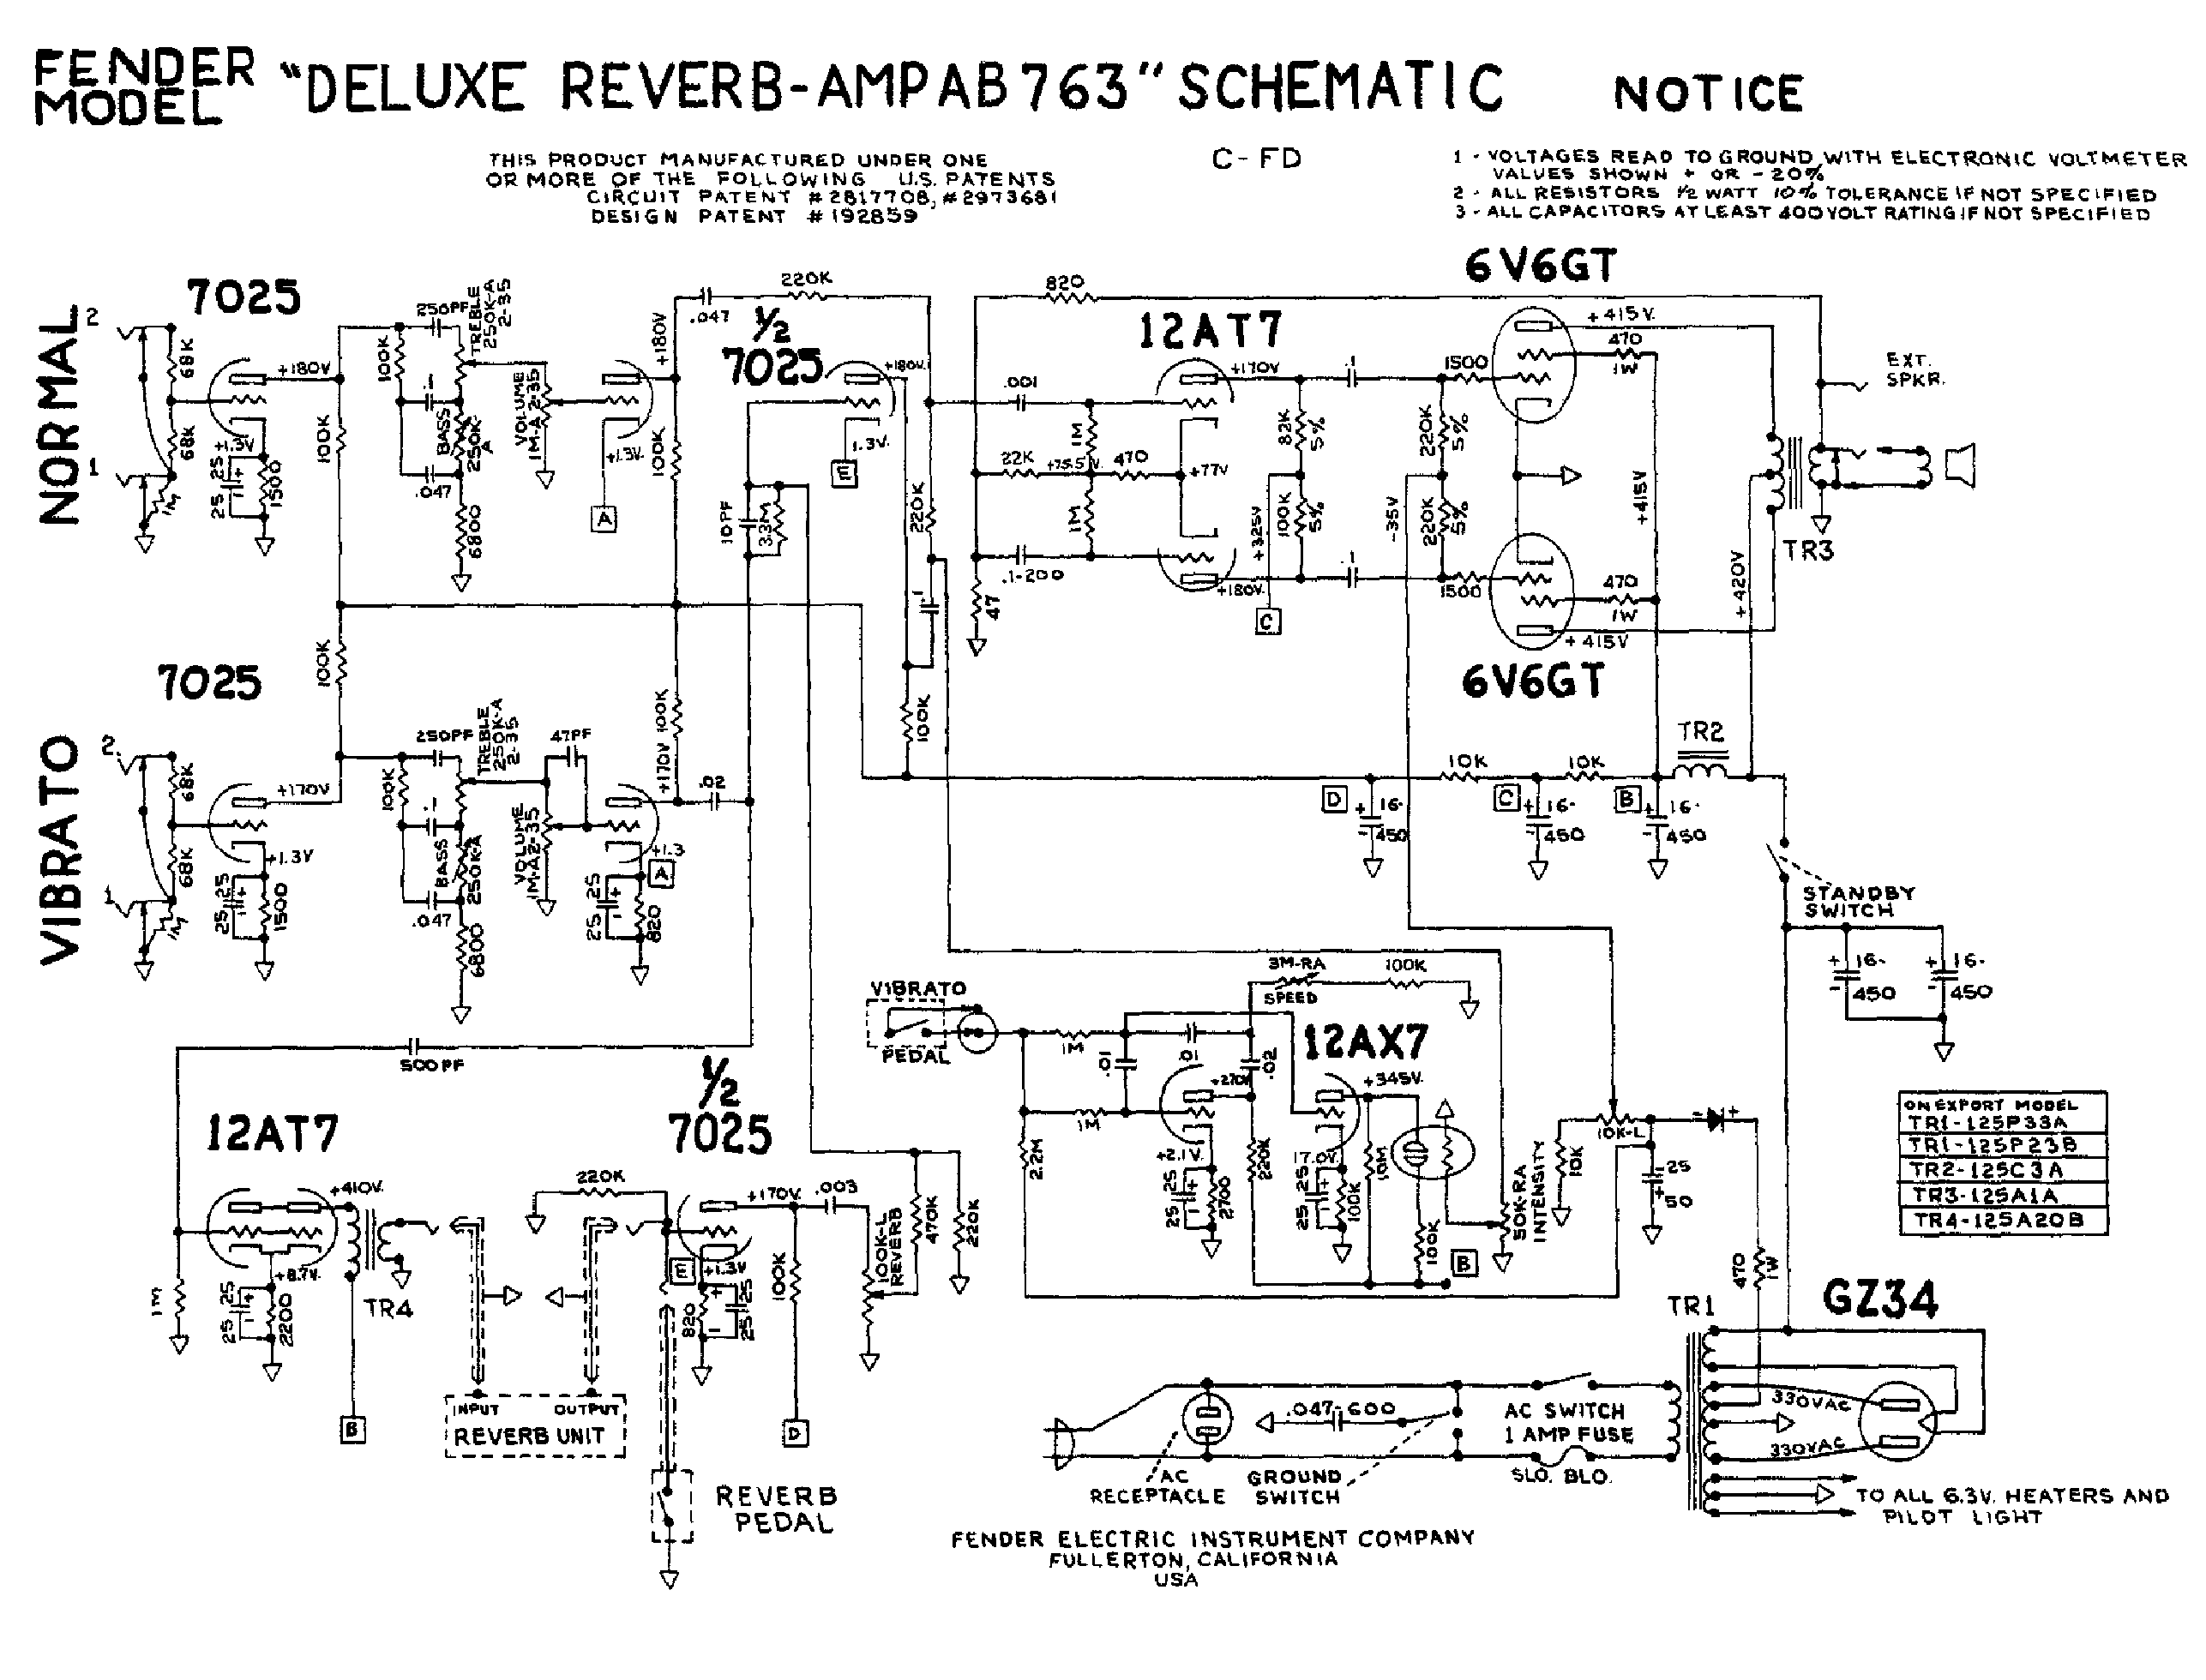 fender deluxe reverb ab763 service manual download schematics rh elektrotanya com fender deluxe reverb reissue owners manual Fender Bass Guitars